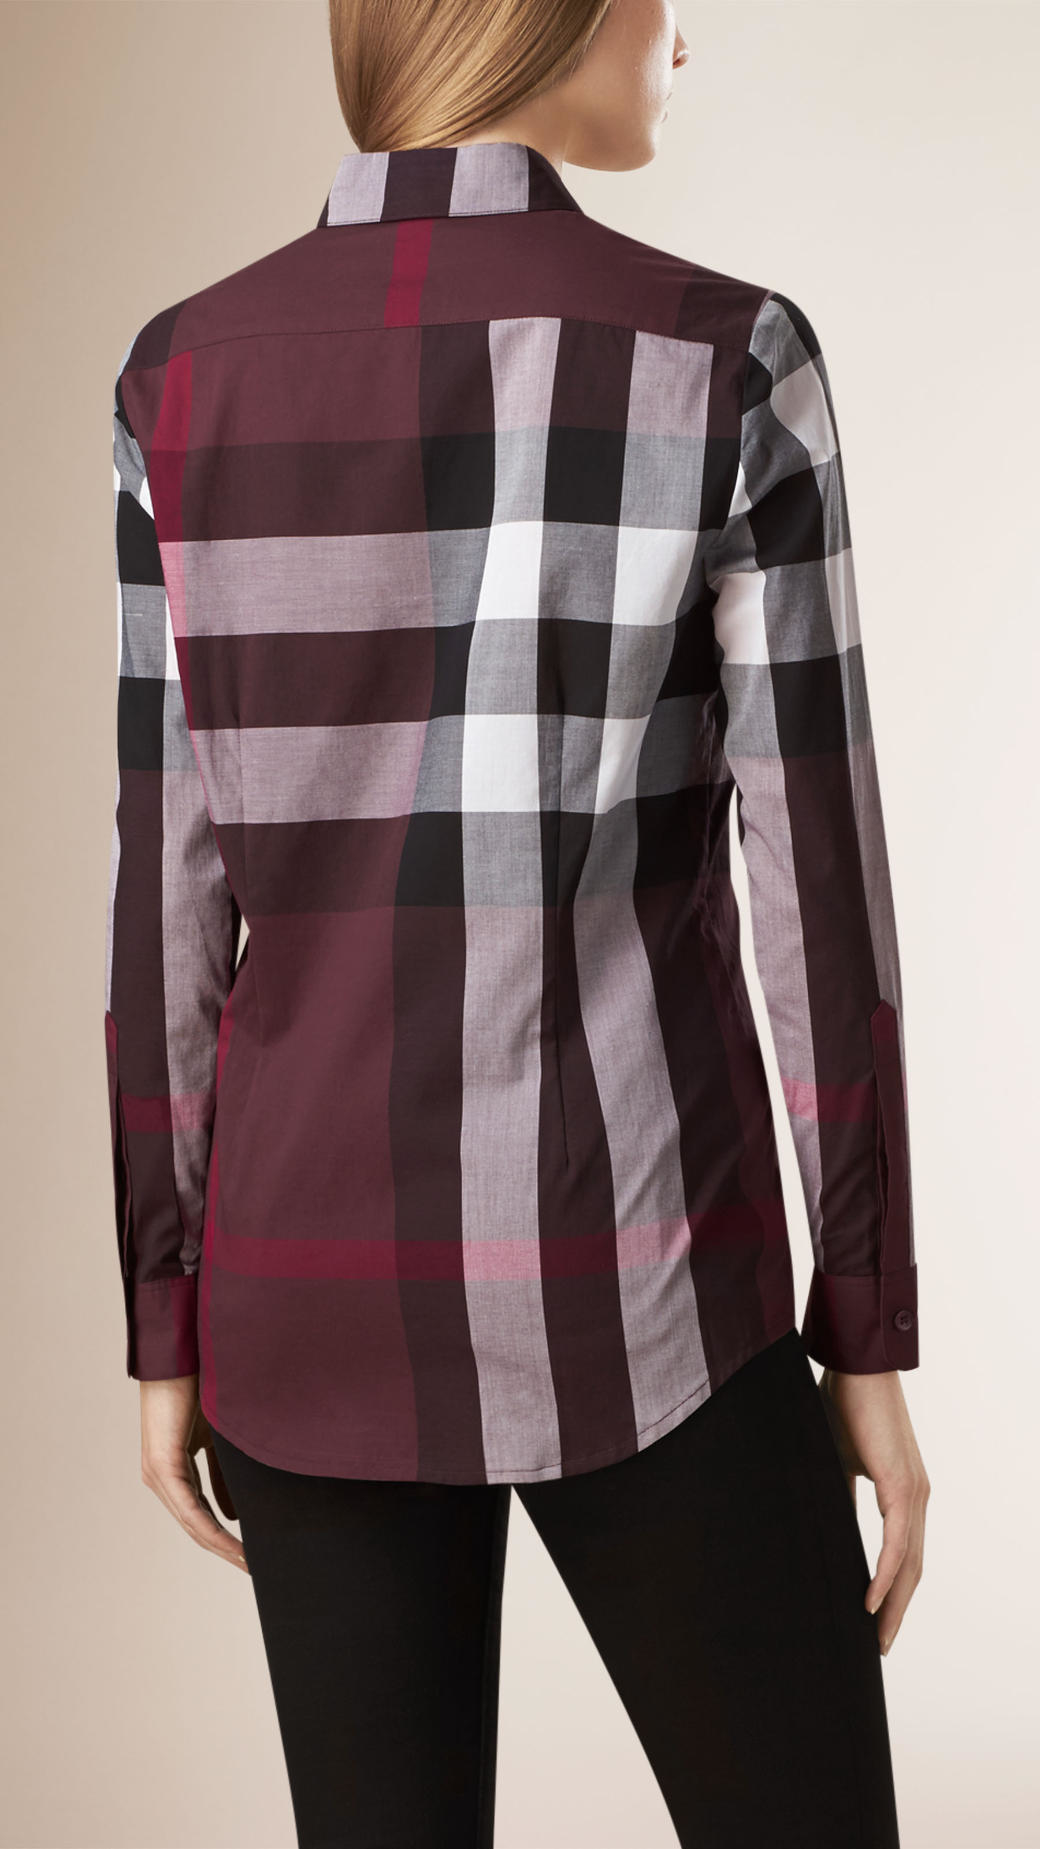 Burberry Check Cotton Shirt Burgundy Red in Red - Lyst 86ea1bebe